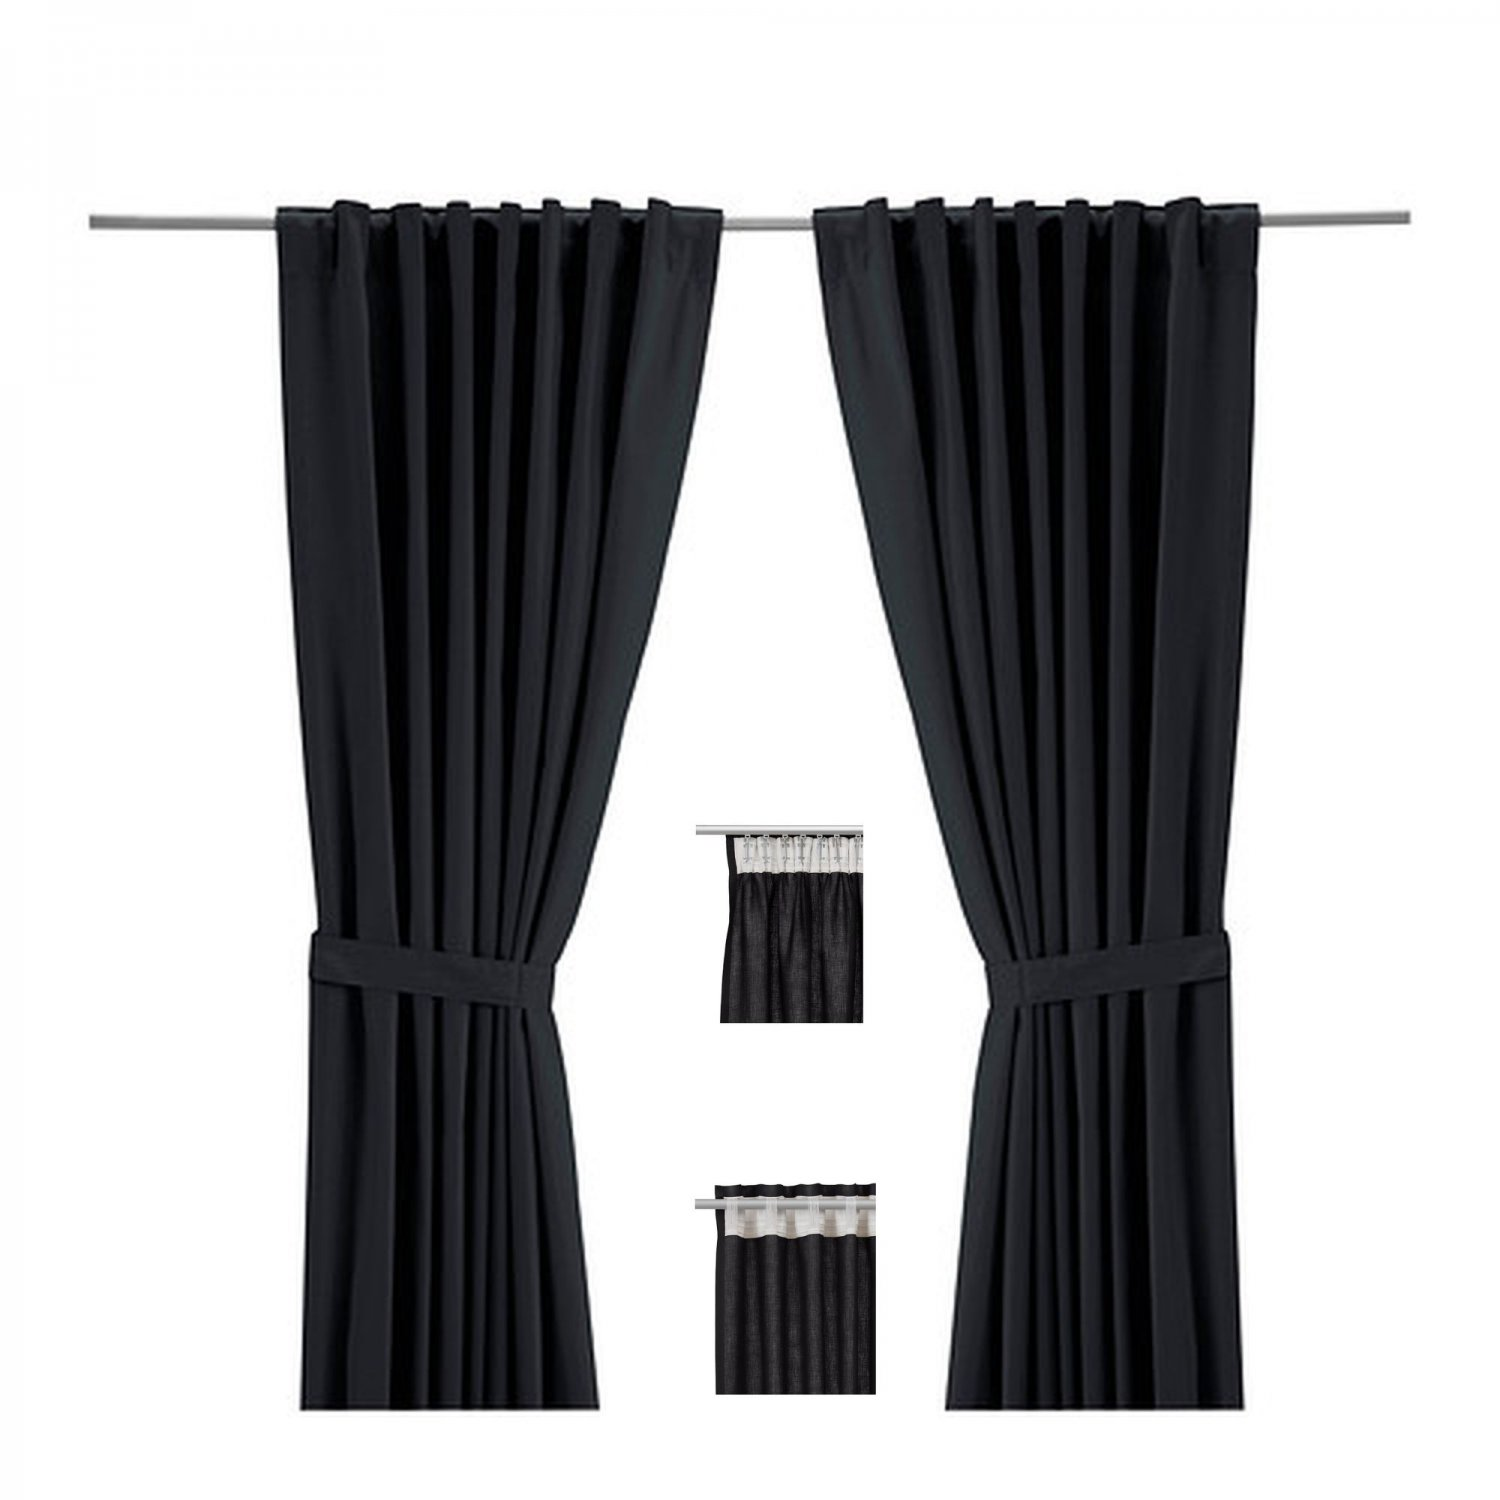 Ikea ritva black curtains drapes heavy cotton 98 for Ikea curtain rods uk